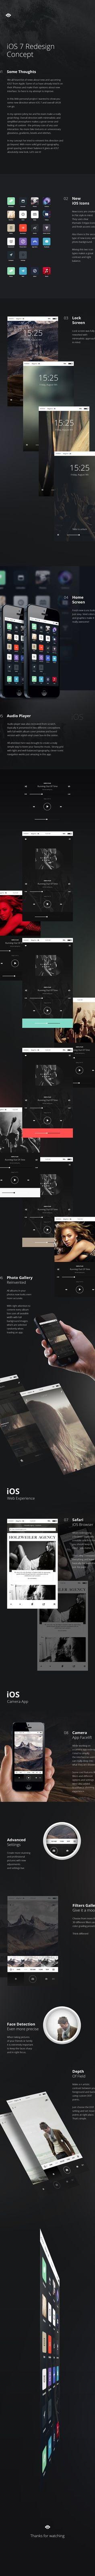 iOS 7 Redesign Concept on Behance